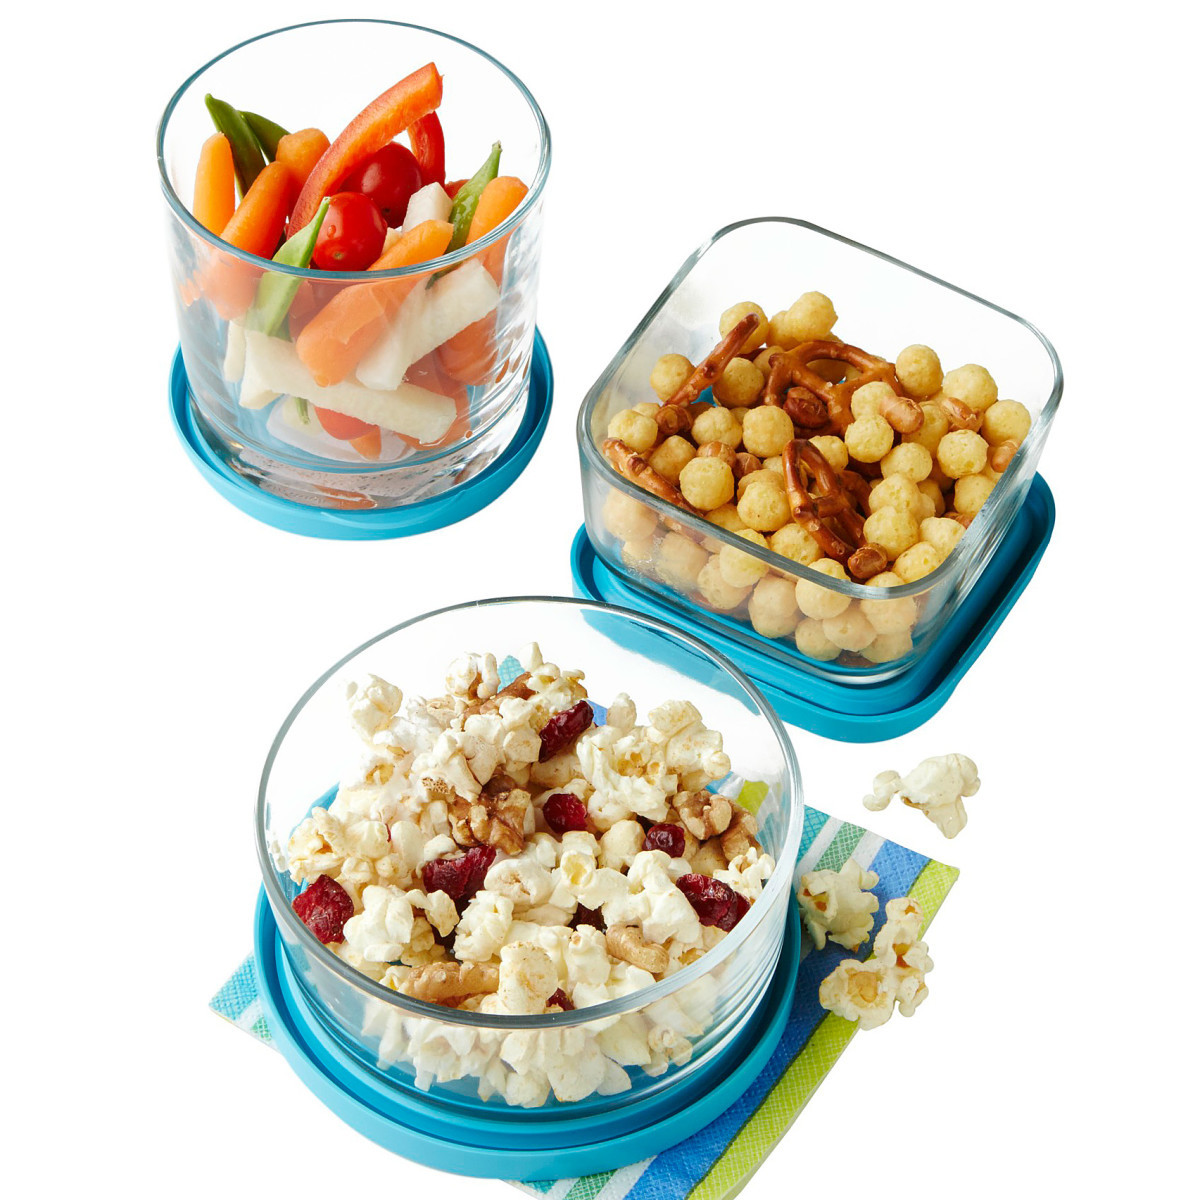 Pretzels Healthy Snack  103 Healthy Snack Recipe Ideas Rachael Ray Every Day